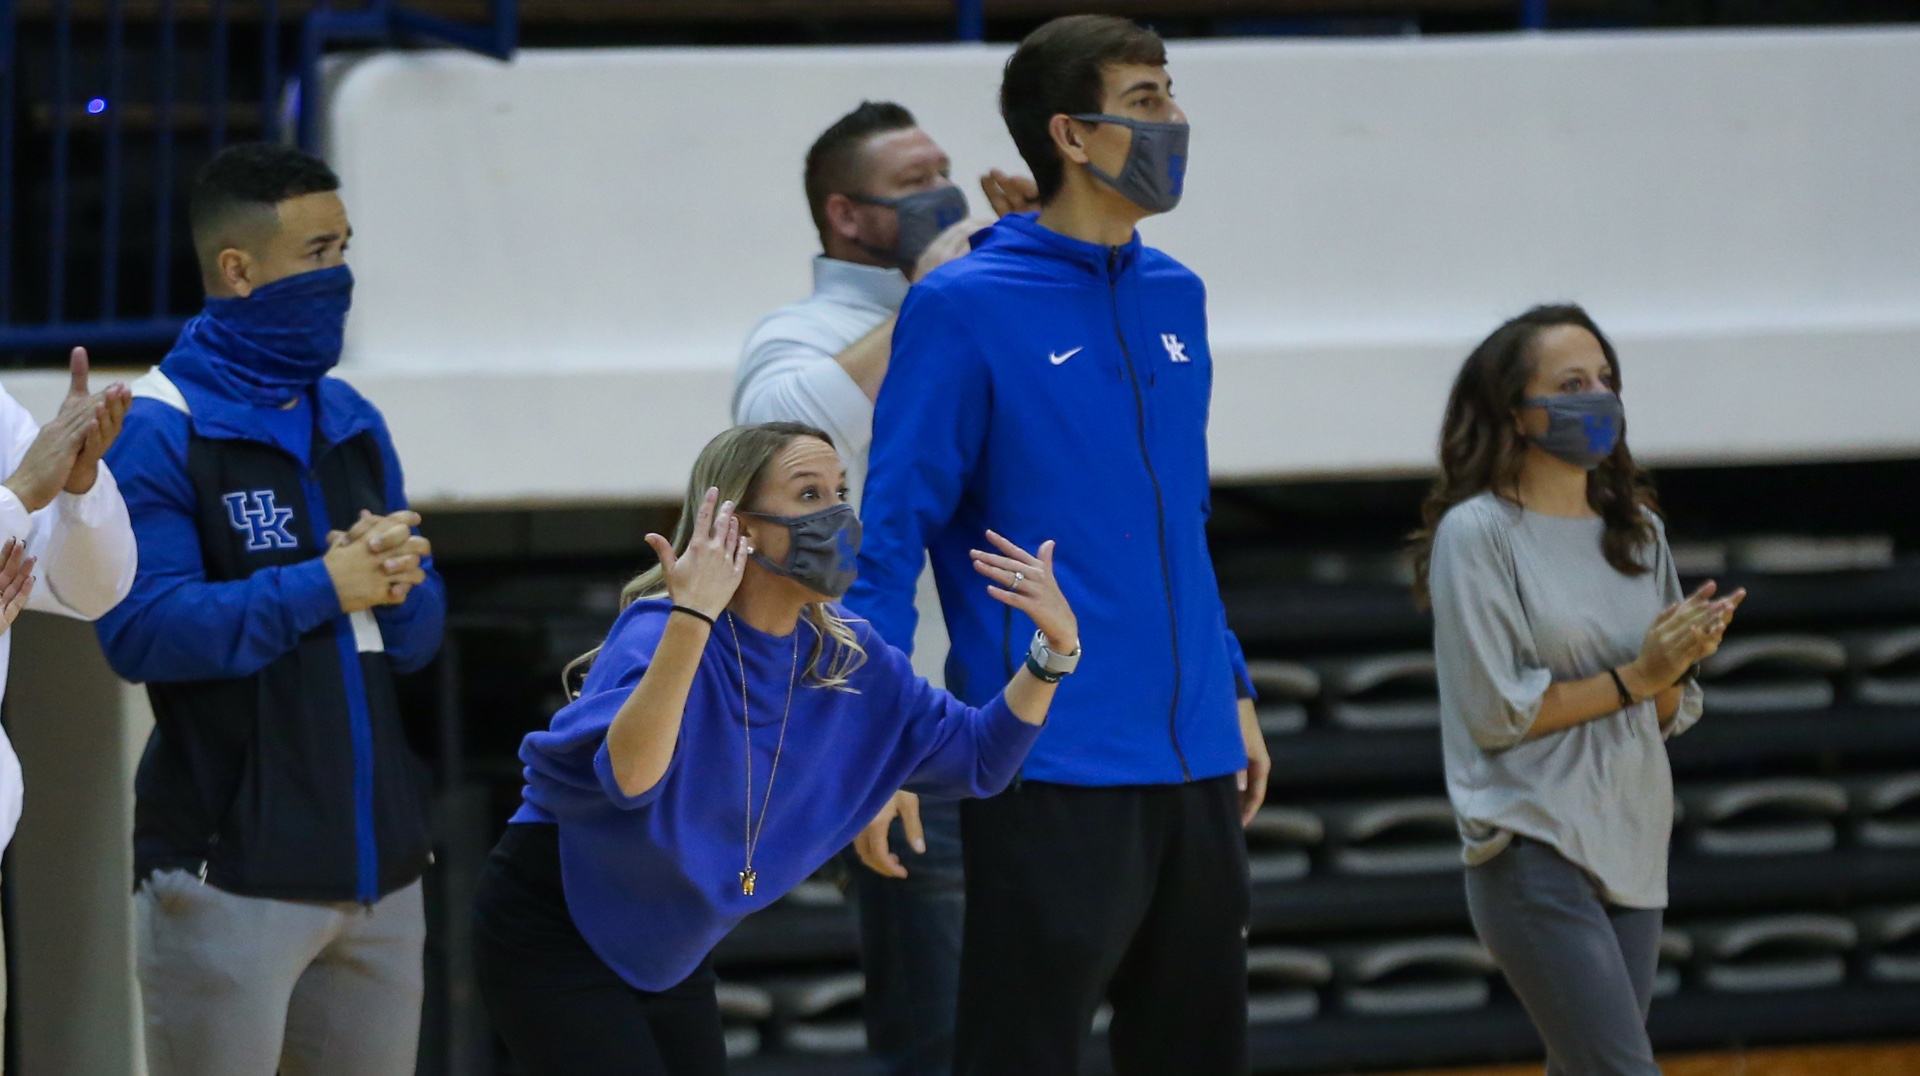 With her hands up in the air, Coach O'Connor passionately cheers and directs her team from the sidelines at a competition.